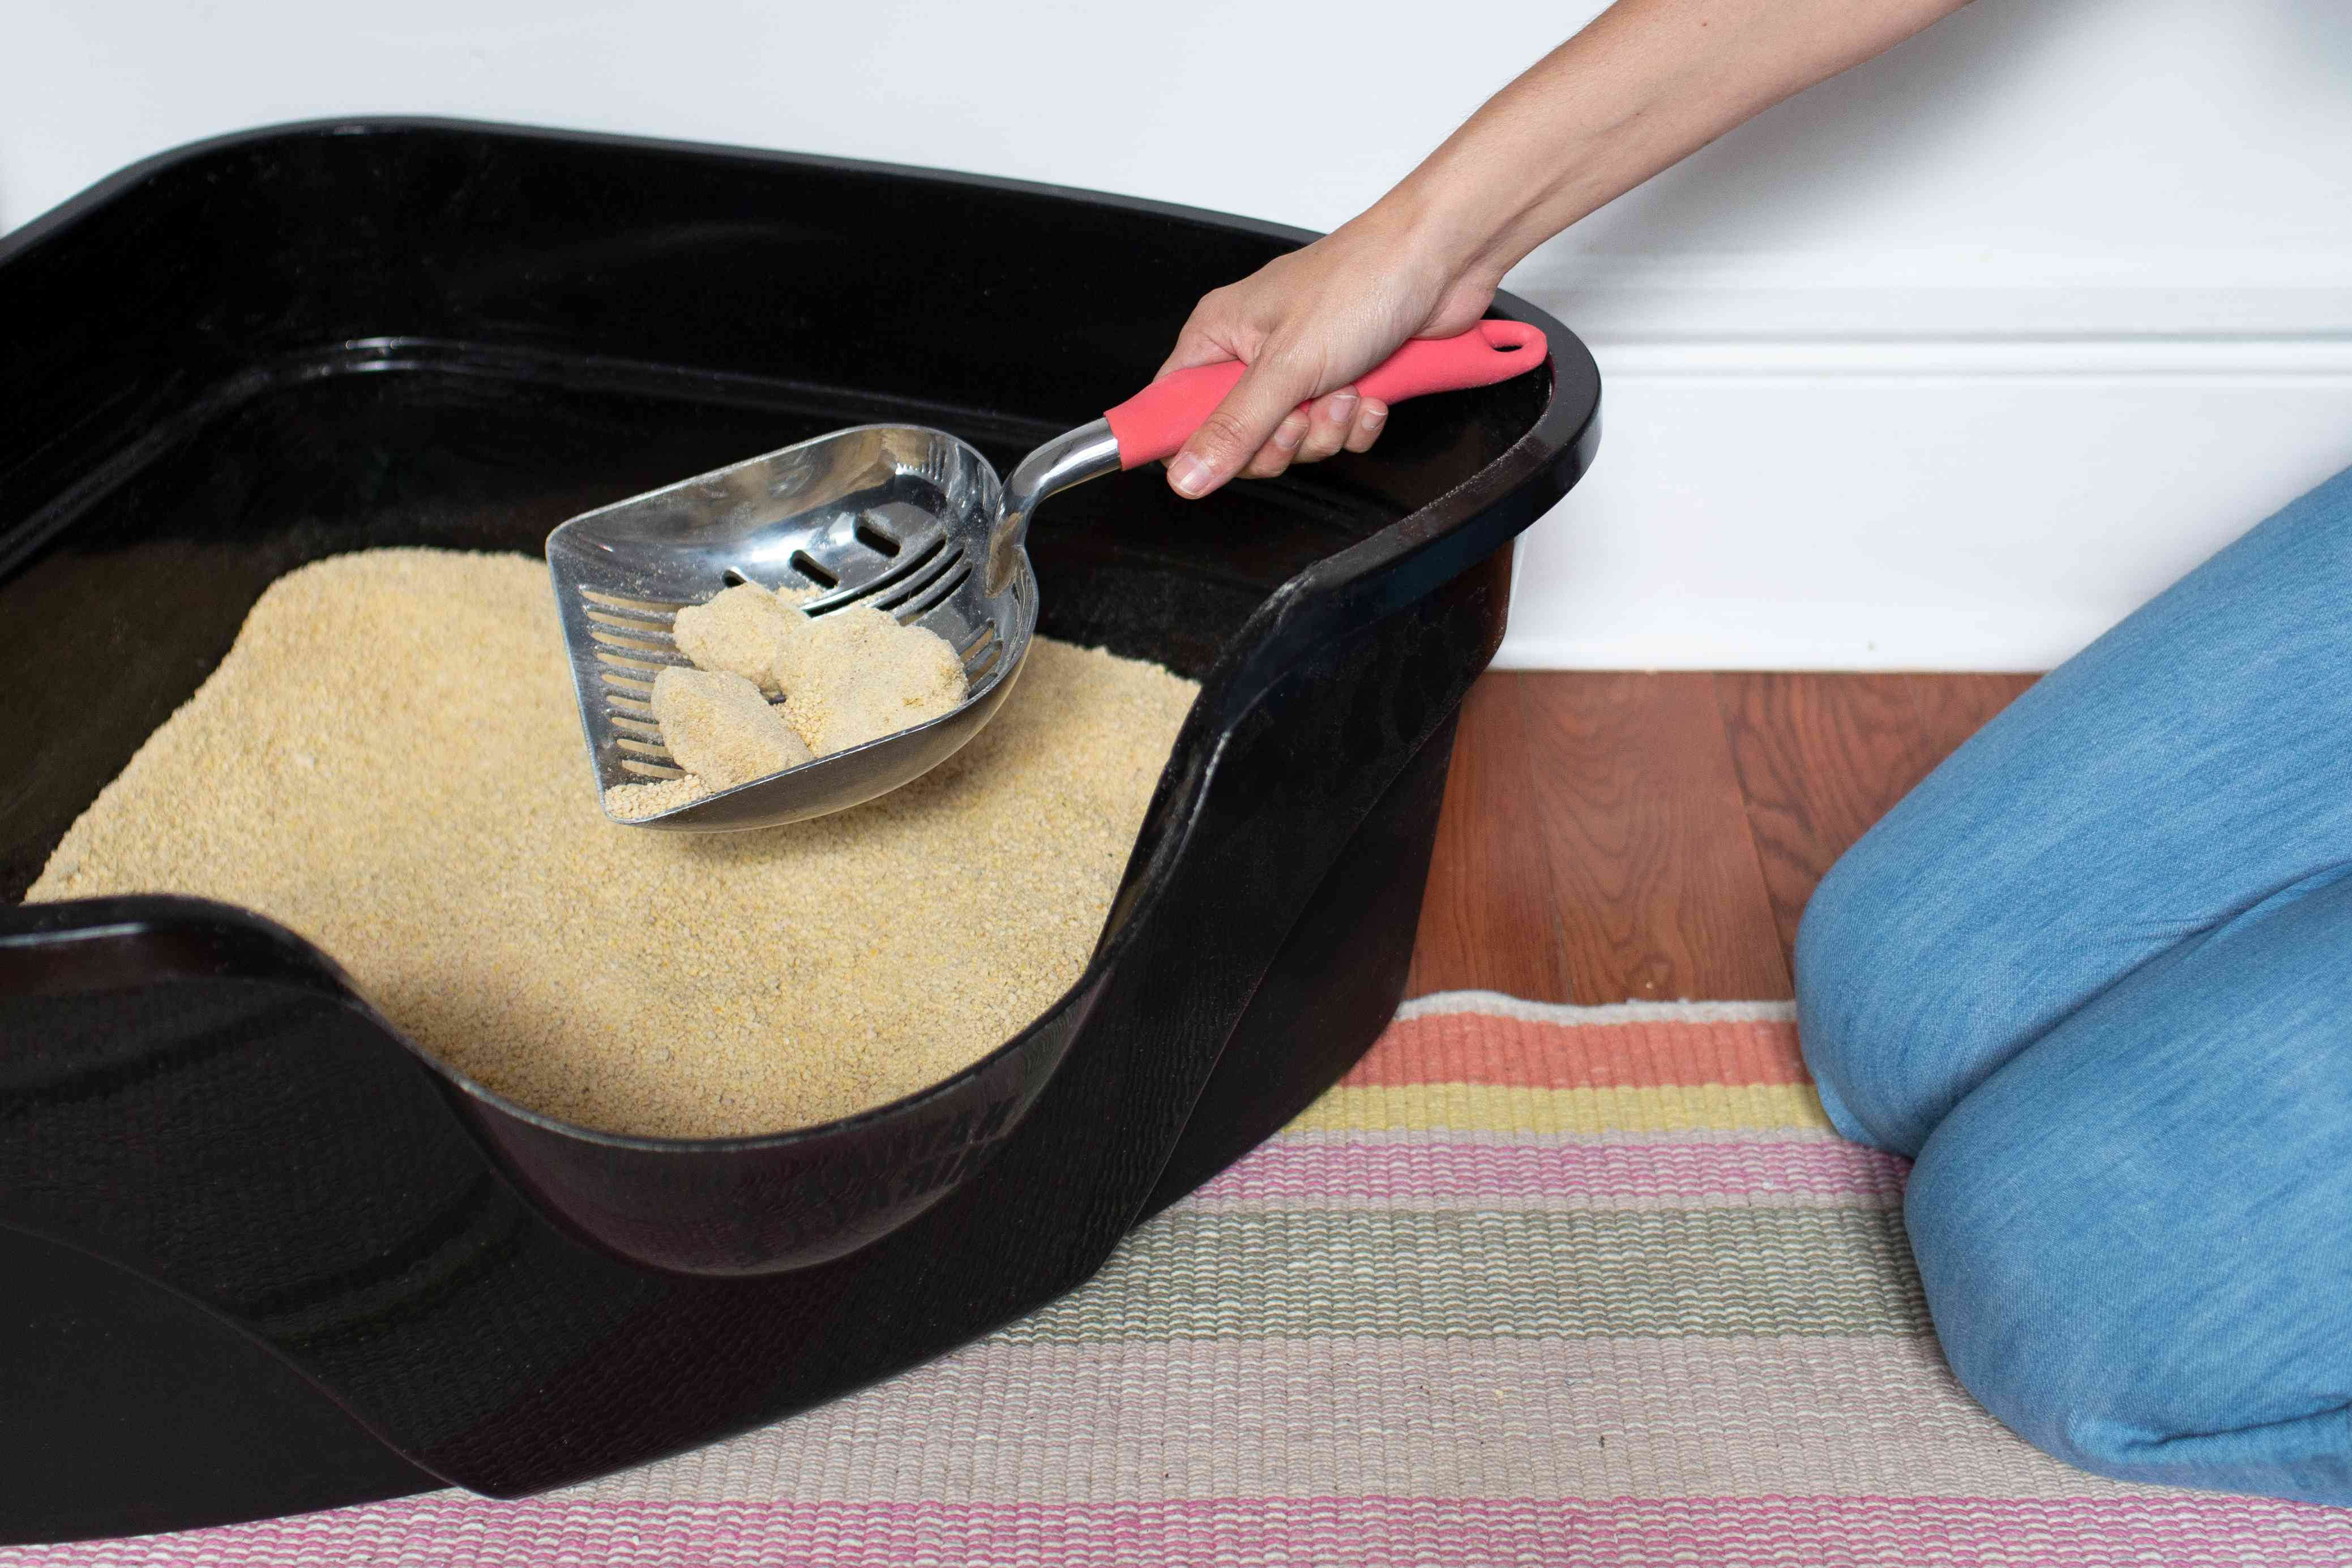 person scooping a litter box